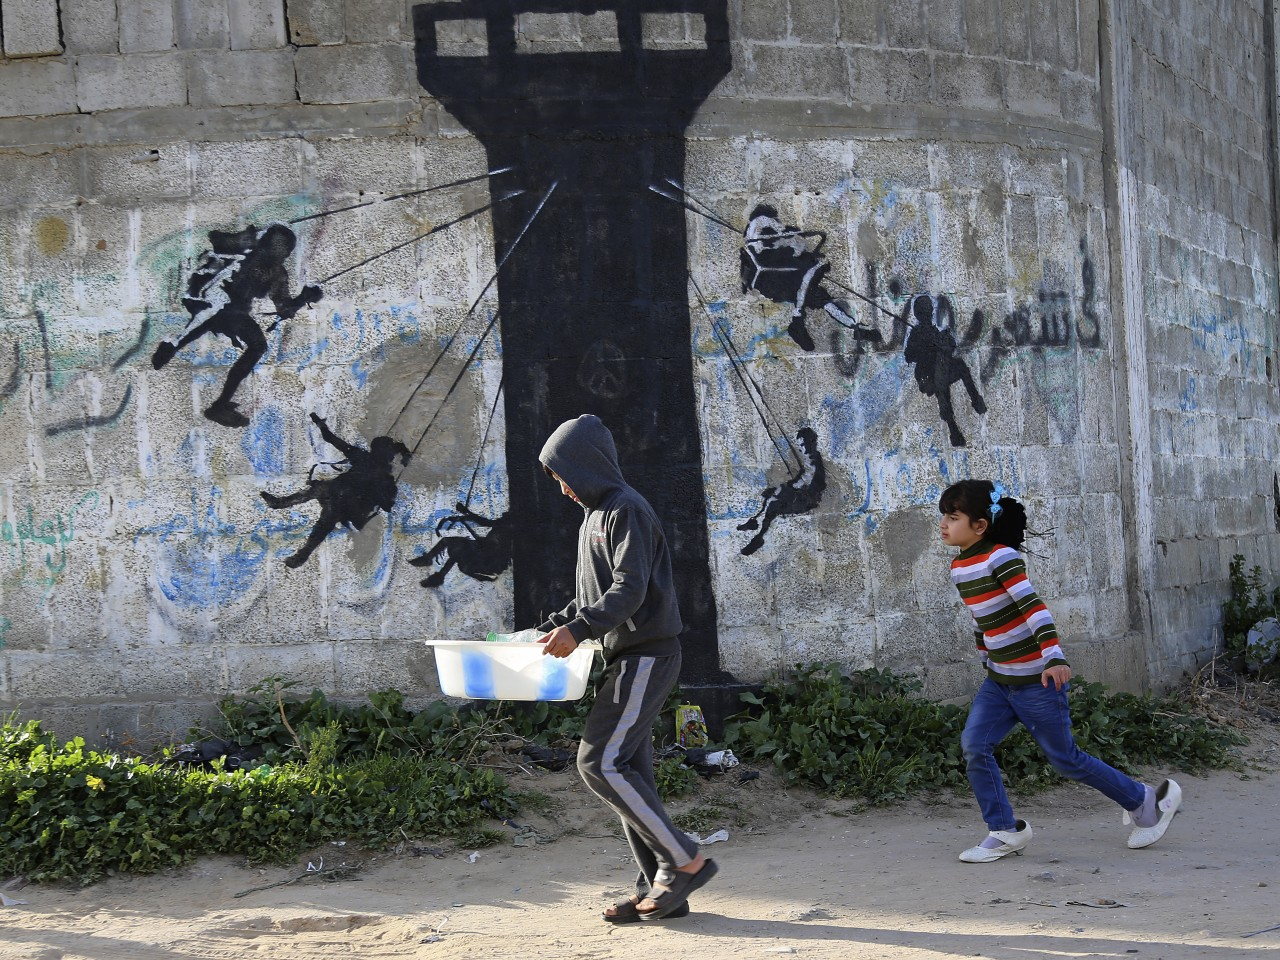 banksy graffiti art essay Art: an analysis of banksy by danny veekens posted on may 21, 2010 february 26, 2013 without a doubt, the most popular graffiti artist in the world is banksy, real identity unknown his art can be traced back to the early 1990's, but it wasn't until the turn of the decade when he really started to establish himself as a popular artist.